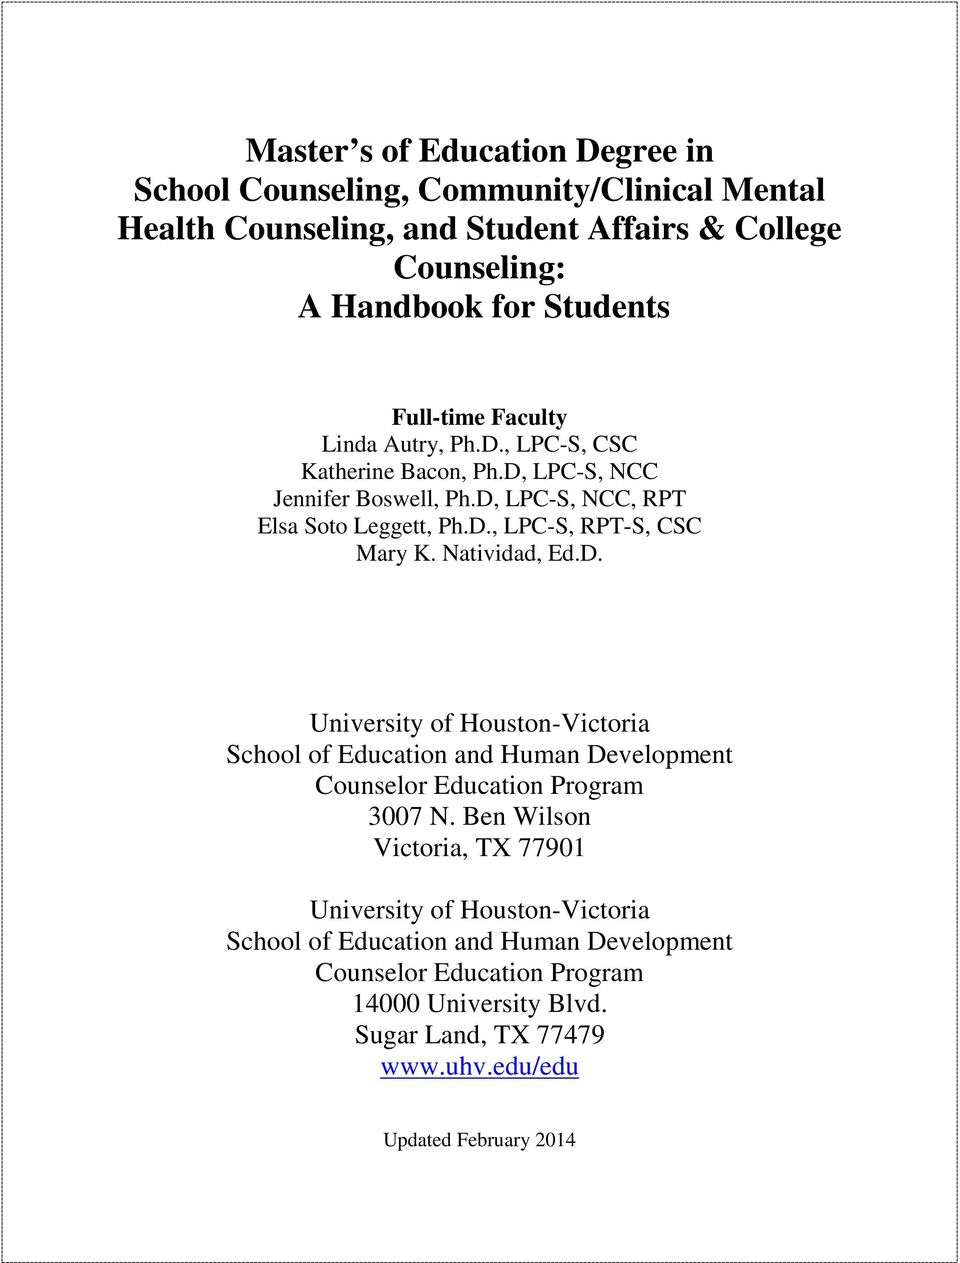 Natividad, Ed.D. University of Houston-Victoria School of Education and Human Development Counselor Education Program 3007 N.